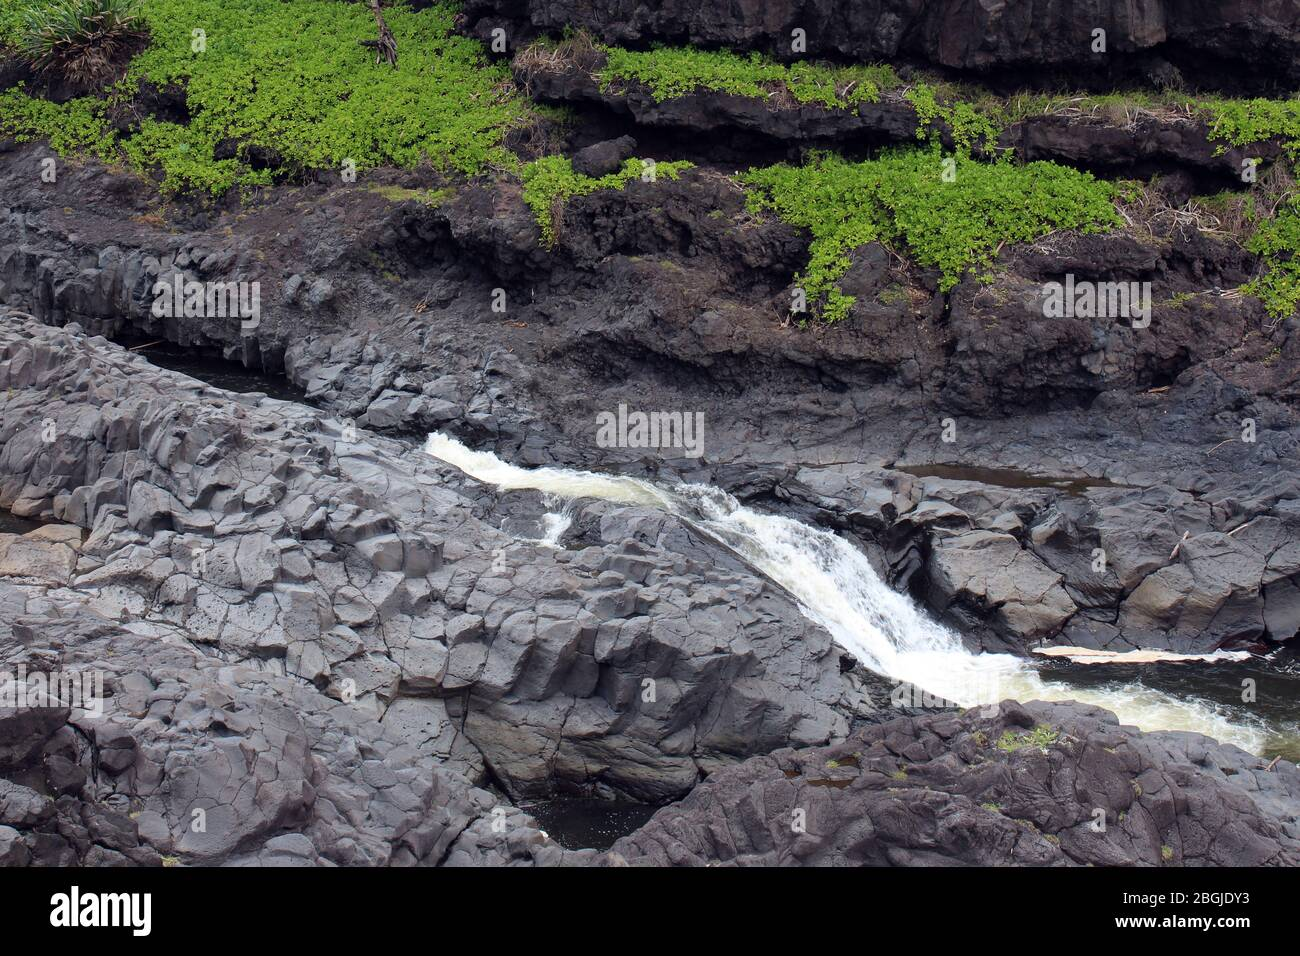 A section of Palikea Stream, Oheo Gulch, Seven Sacred Pools, running through volcani rock with Scaevola taccada plants growing in the rock, Maui, Hawa Stock Photo